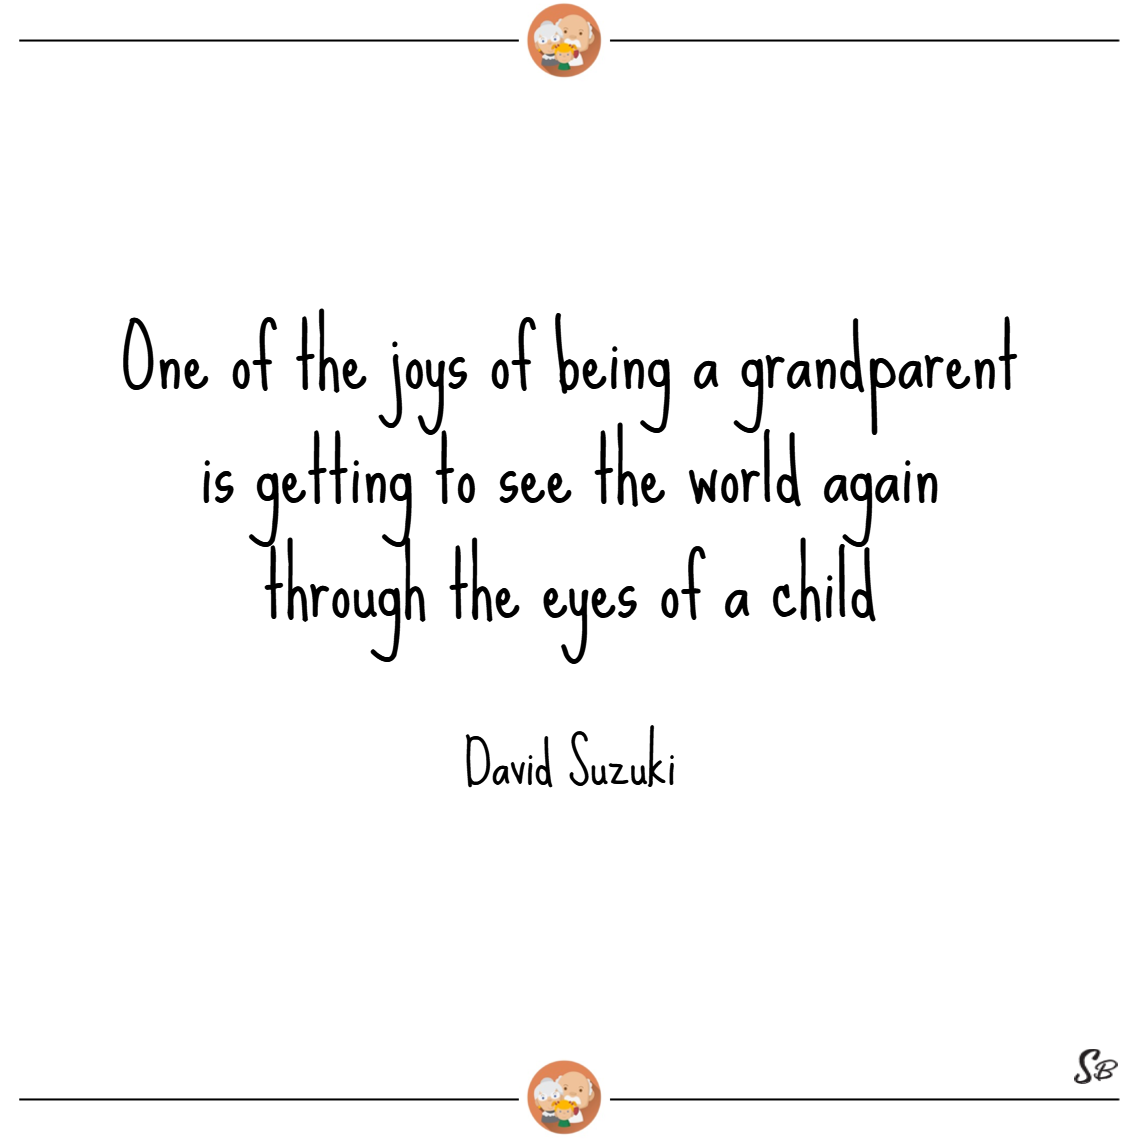 One of the joys of being a grandparent is getting to see the world again through the eyes of a child. – david suzuki